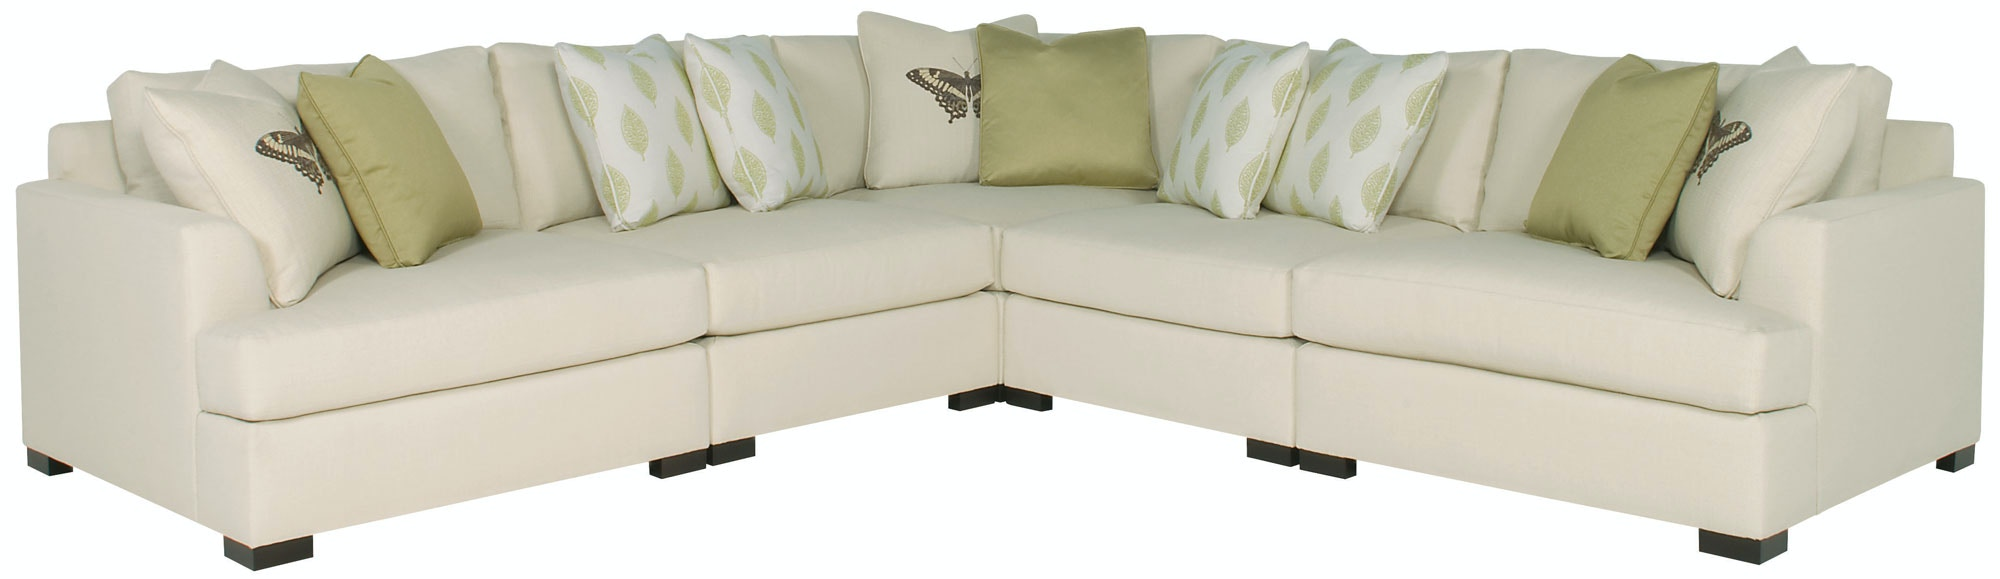 Sofa Express Pineville Nc Bernhardt Interiors Living Room Adriana Sectional 5 Piece N1536